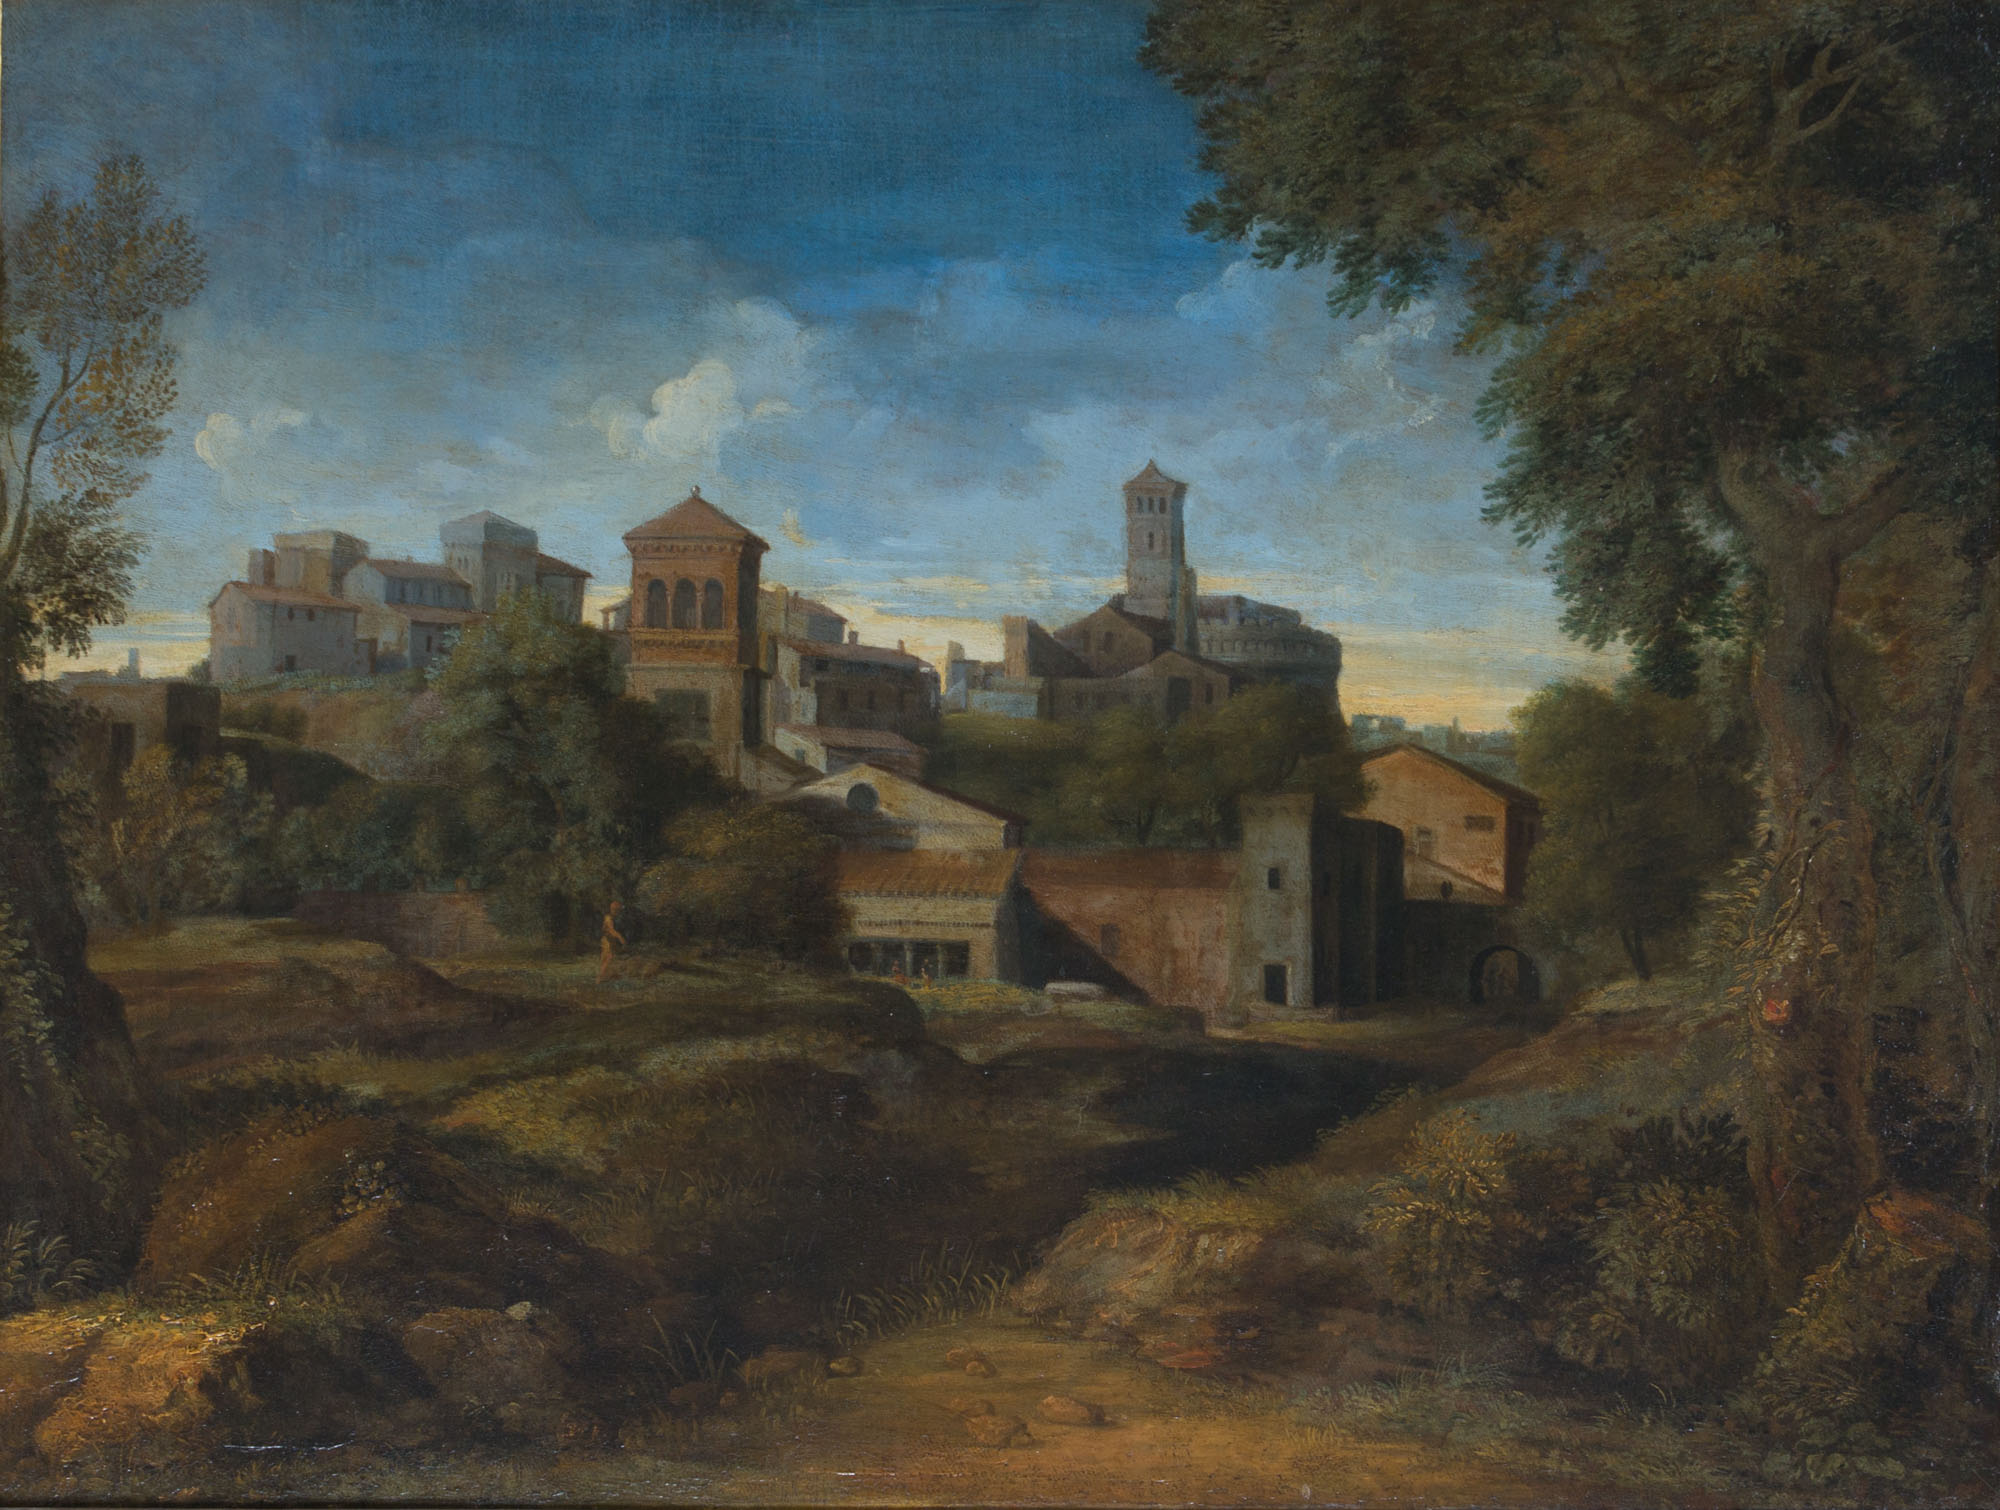 A Classical Landscape with a Town, by Gaspard Dughet, called Gaspard Poussin (1615-1675).